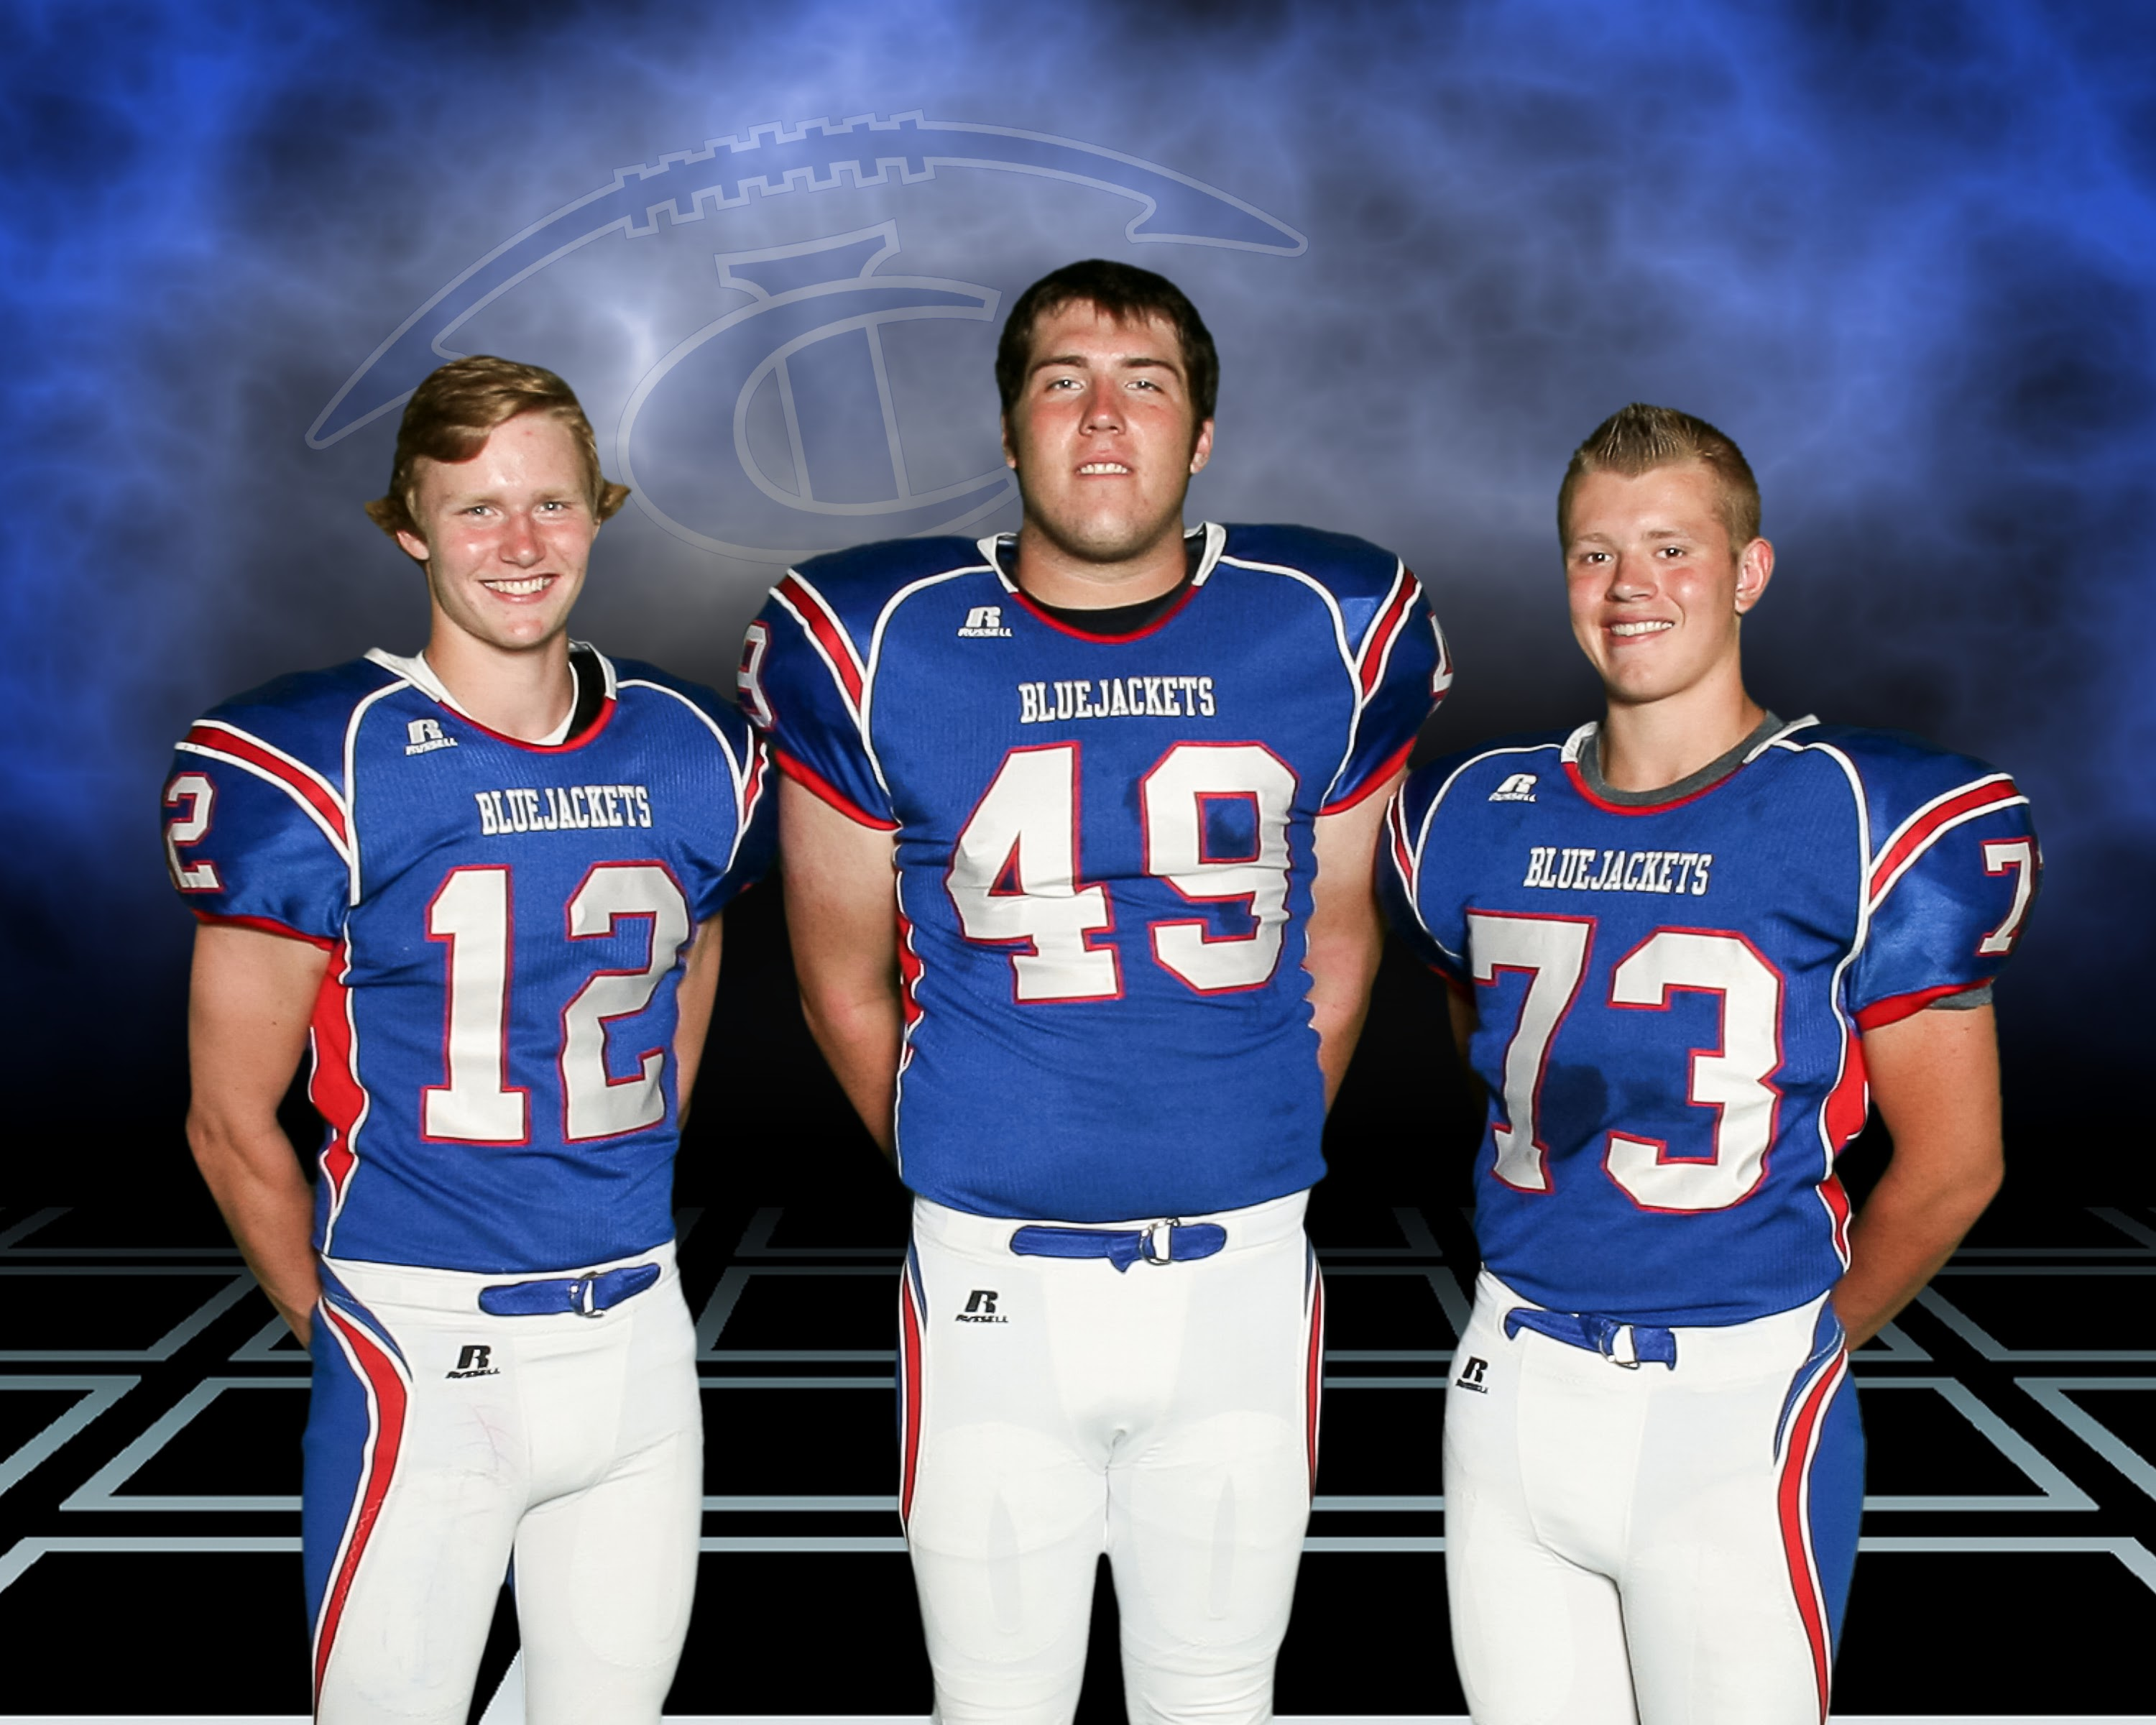 2016 Captains